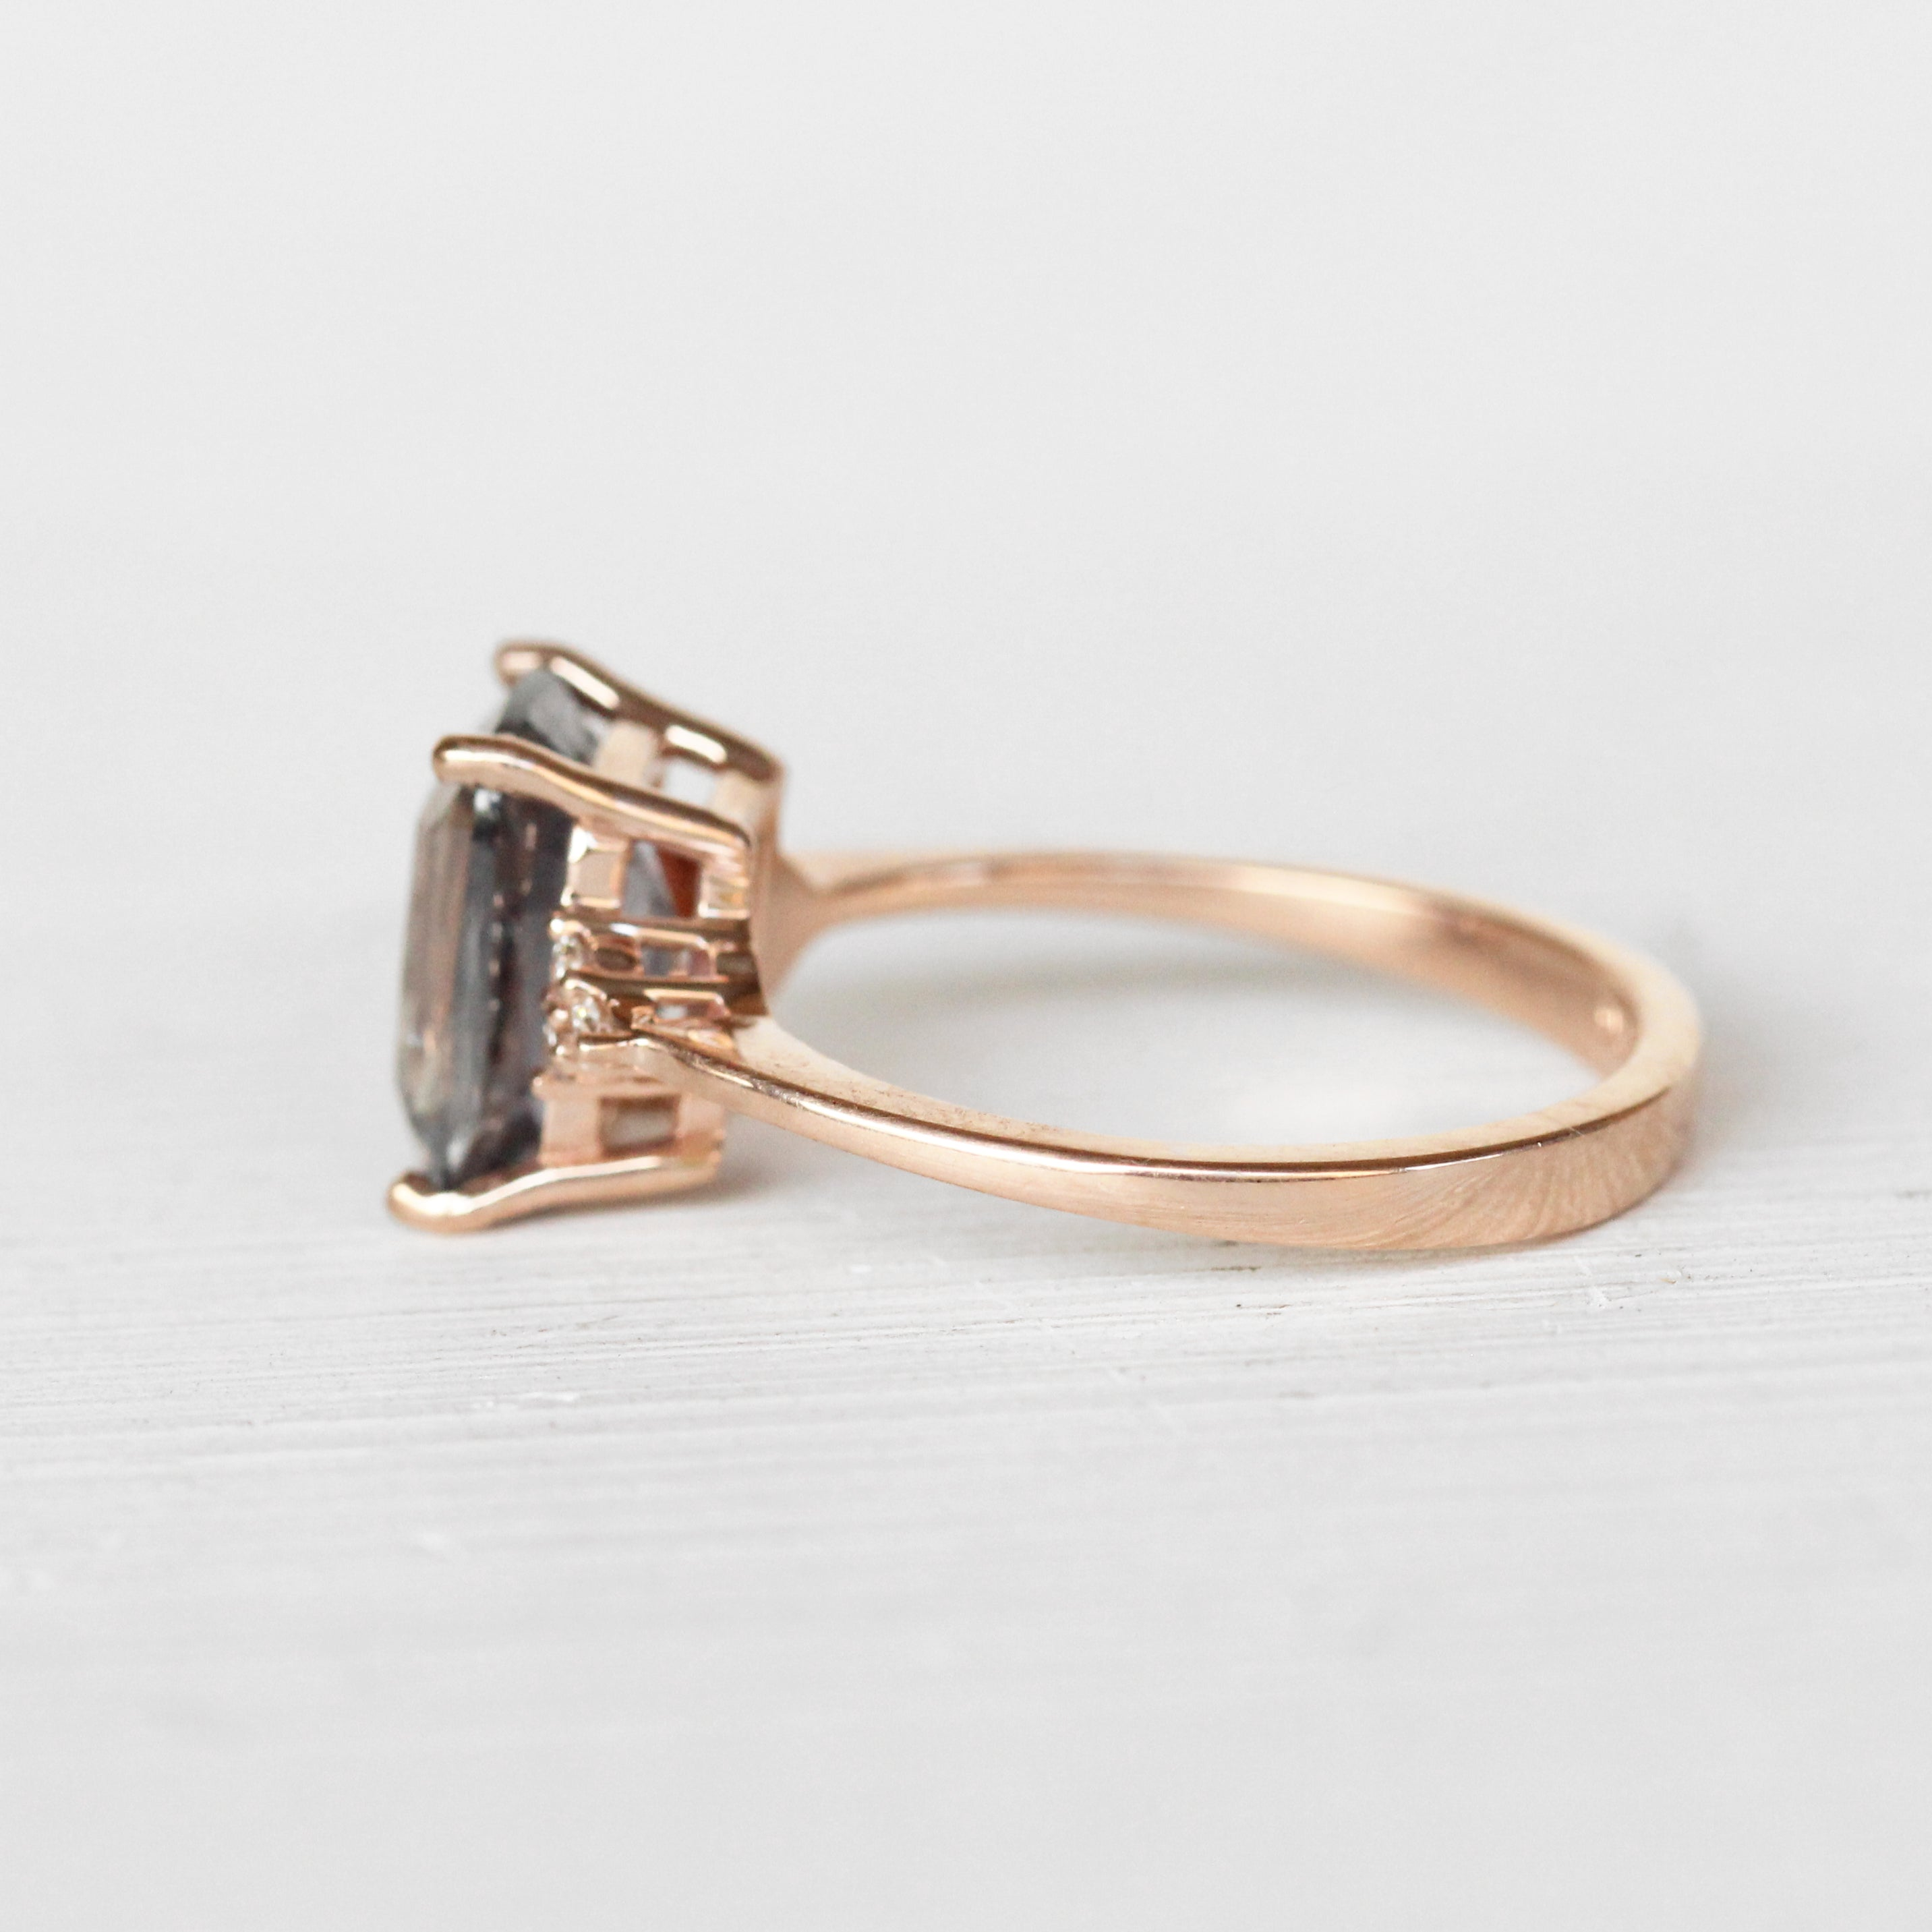 Imogene Ring with a 3.87ct Sapphire in 10k Rose Gold - Ready to Size and Ship